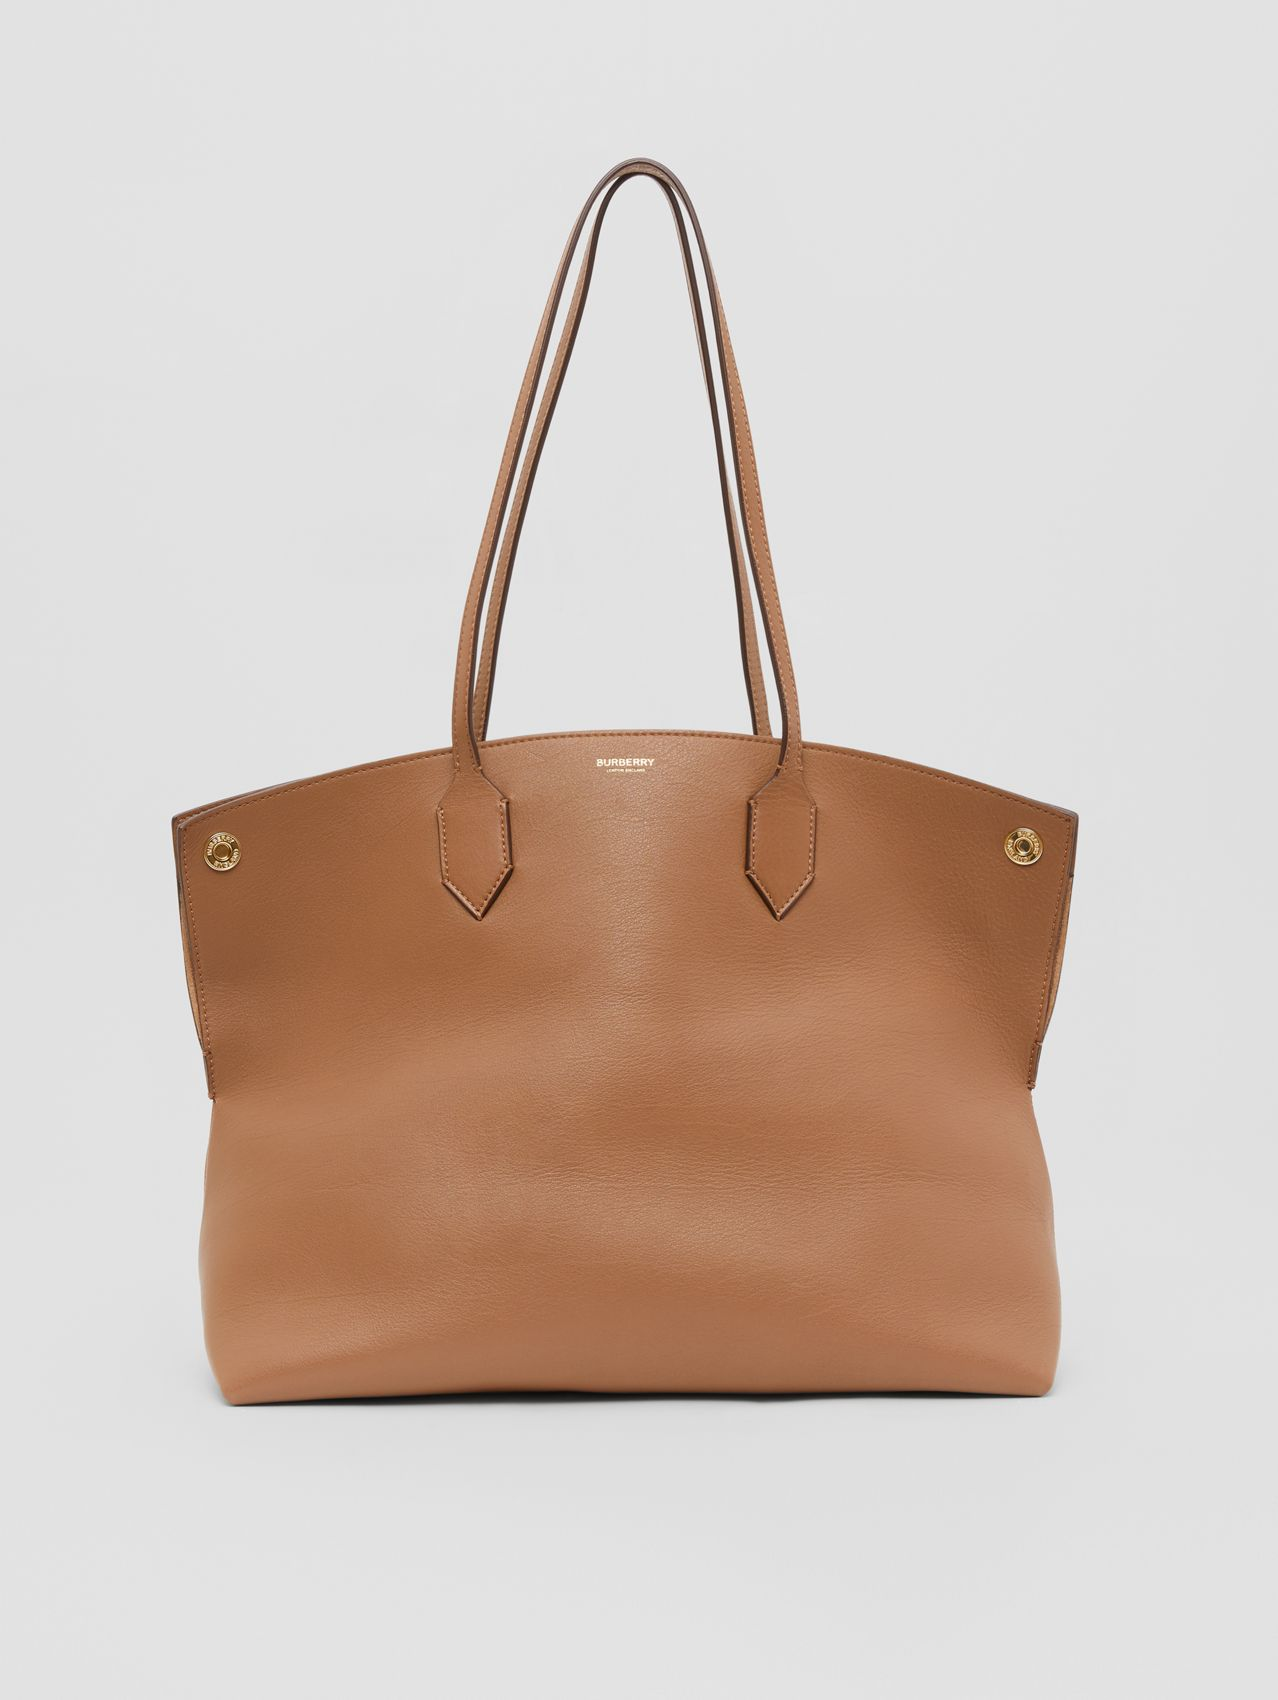 Medium Leather Society Tote in Dusty Caramel